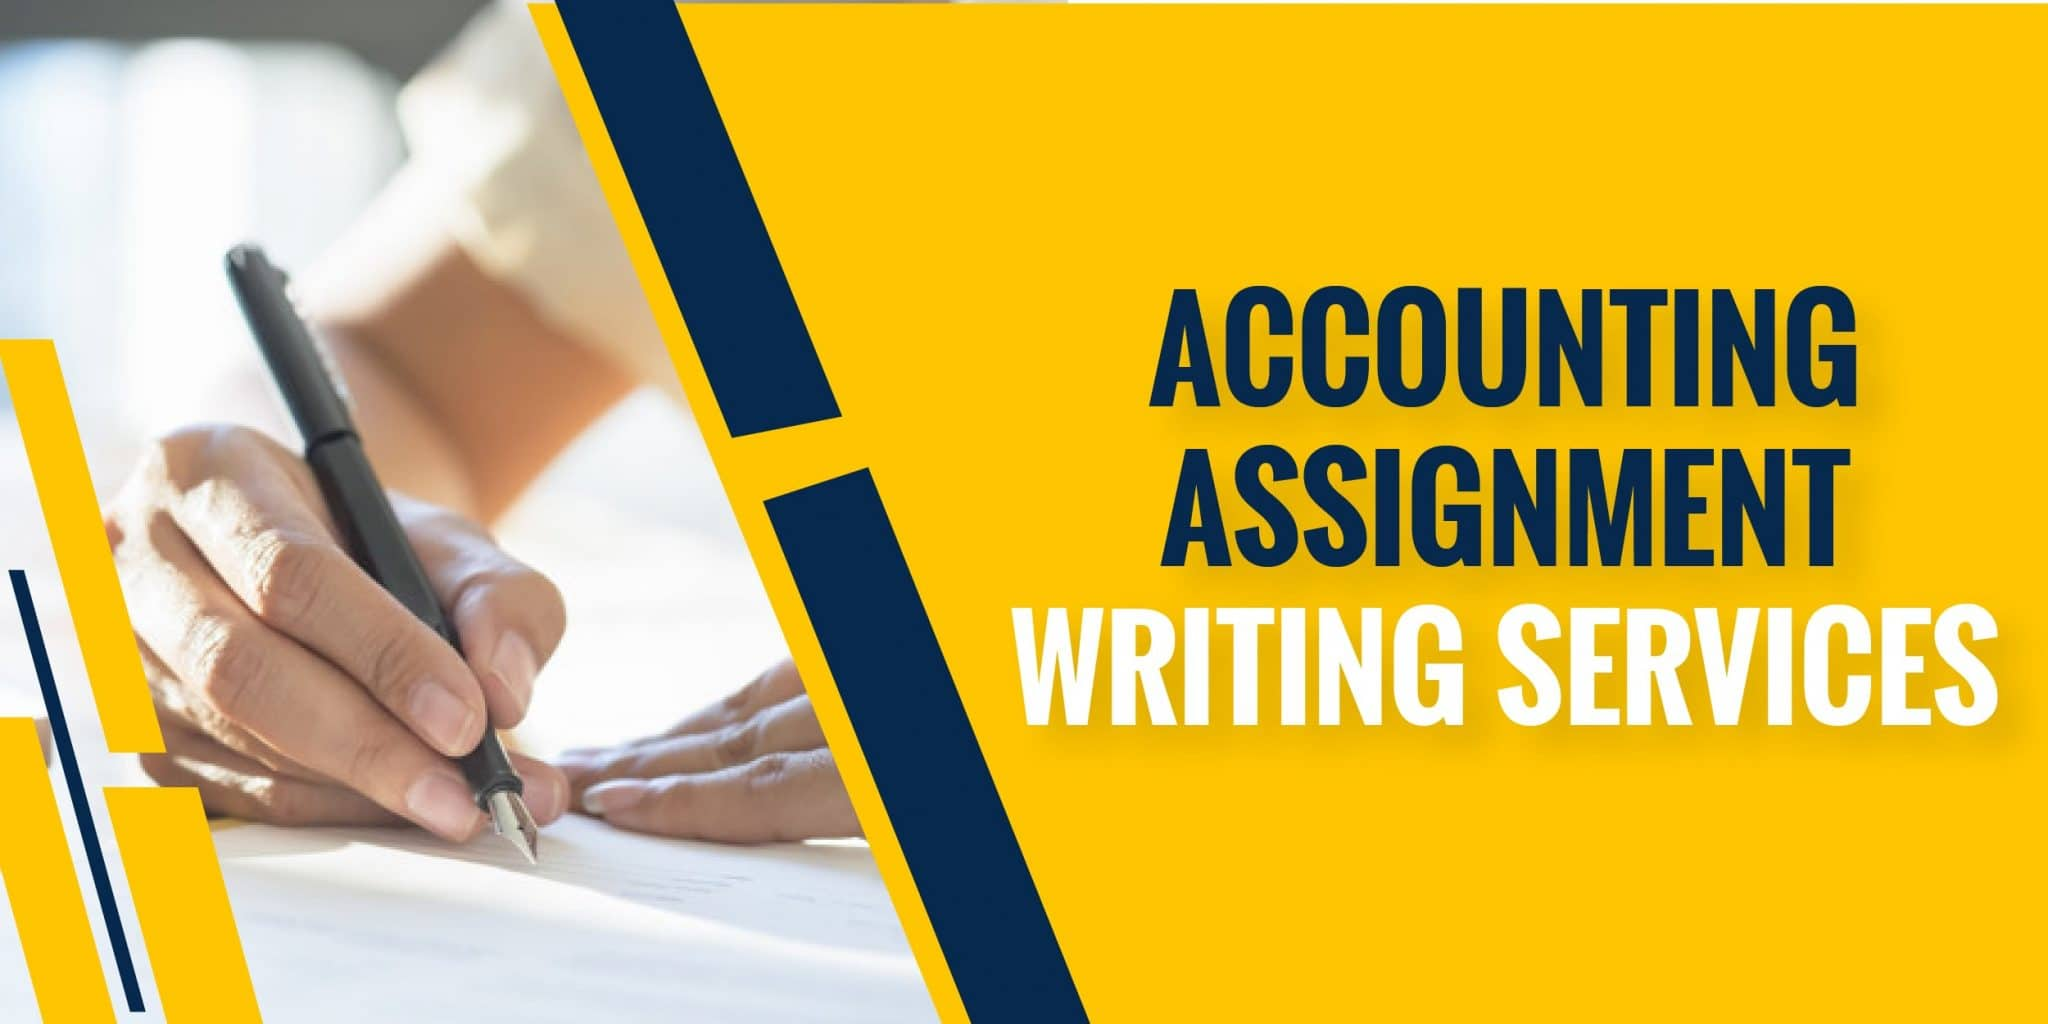 Accounting Assignment writing services